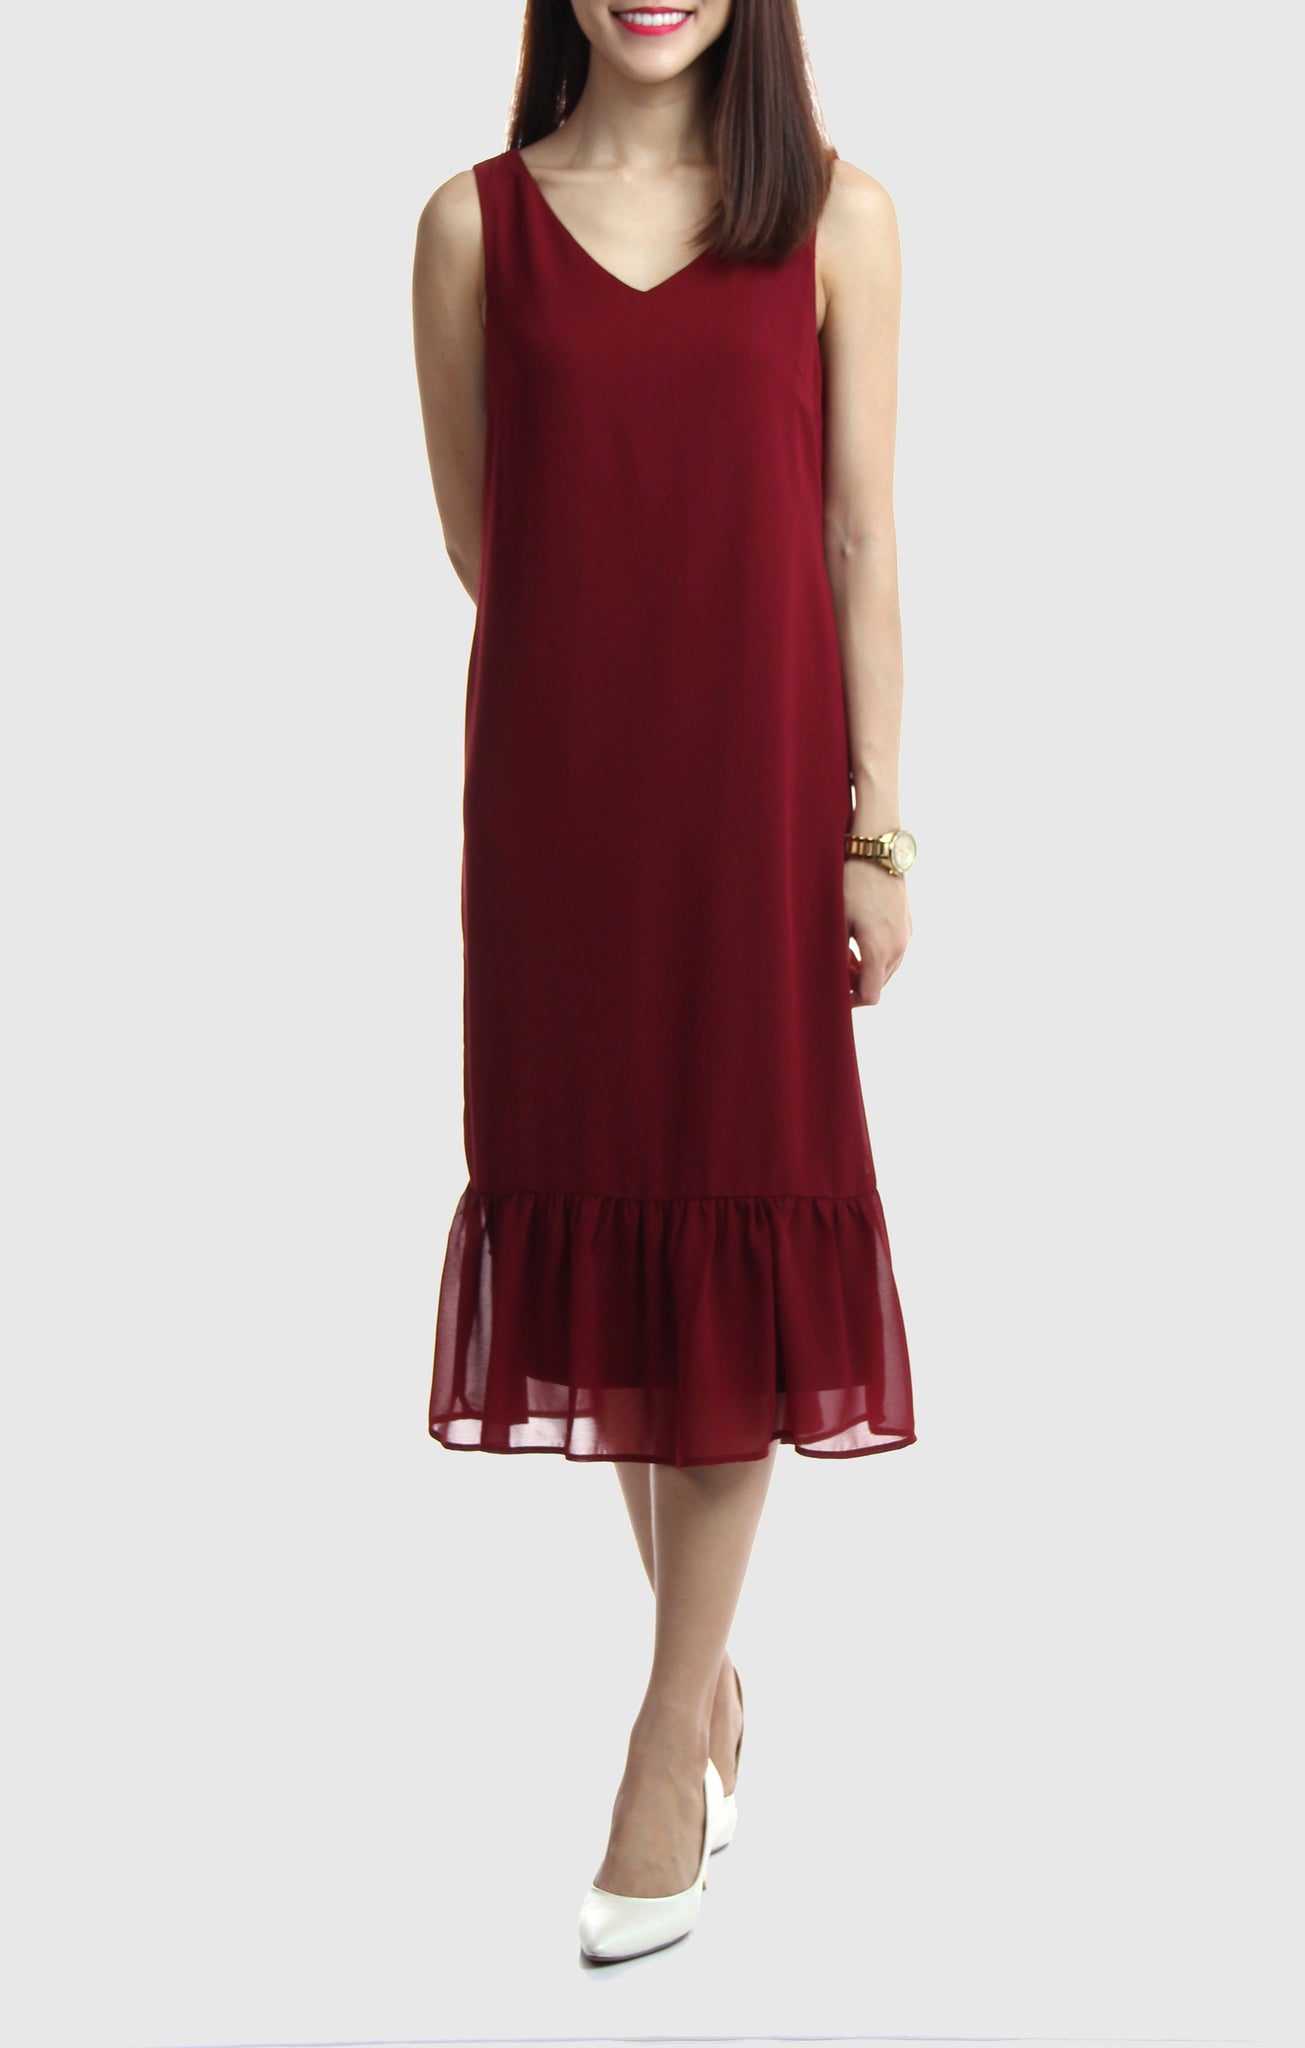 99db1c0418c ... A classy dress in burgundy featuring a V-neckline and ruffled hem ...